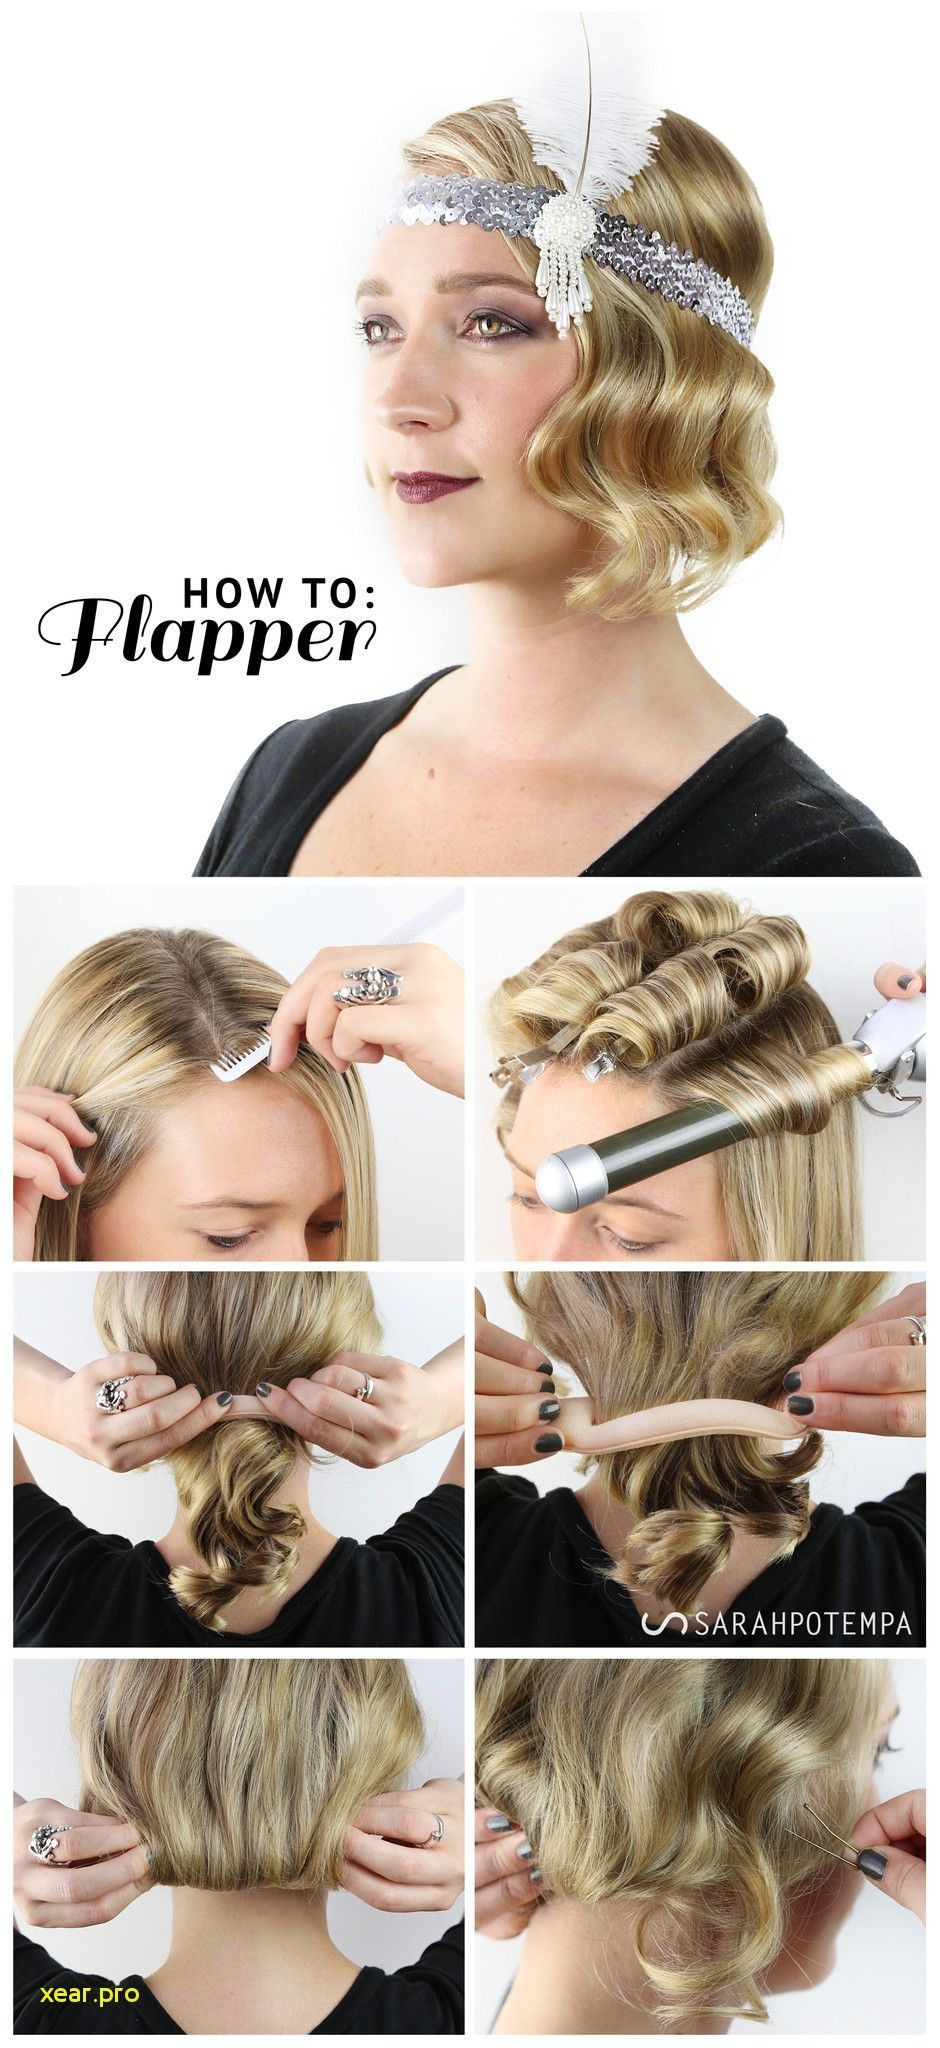 Best Of Beautiful Medium Hair Hairstyle for Parties ...